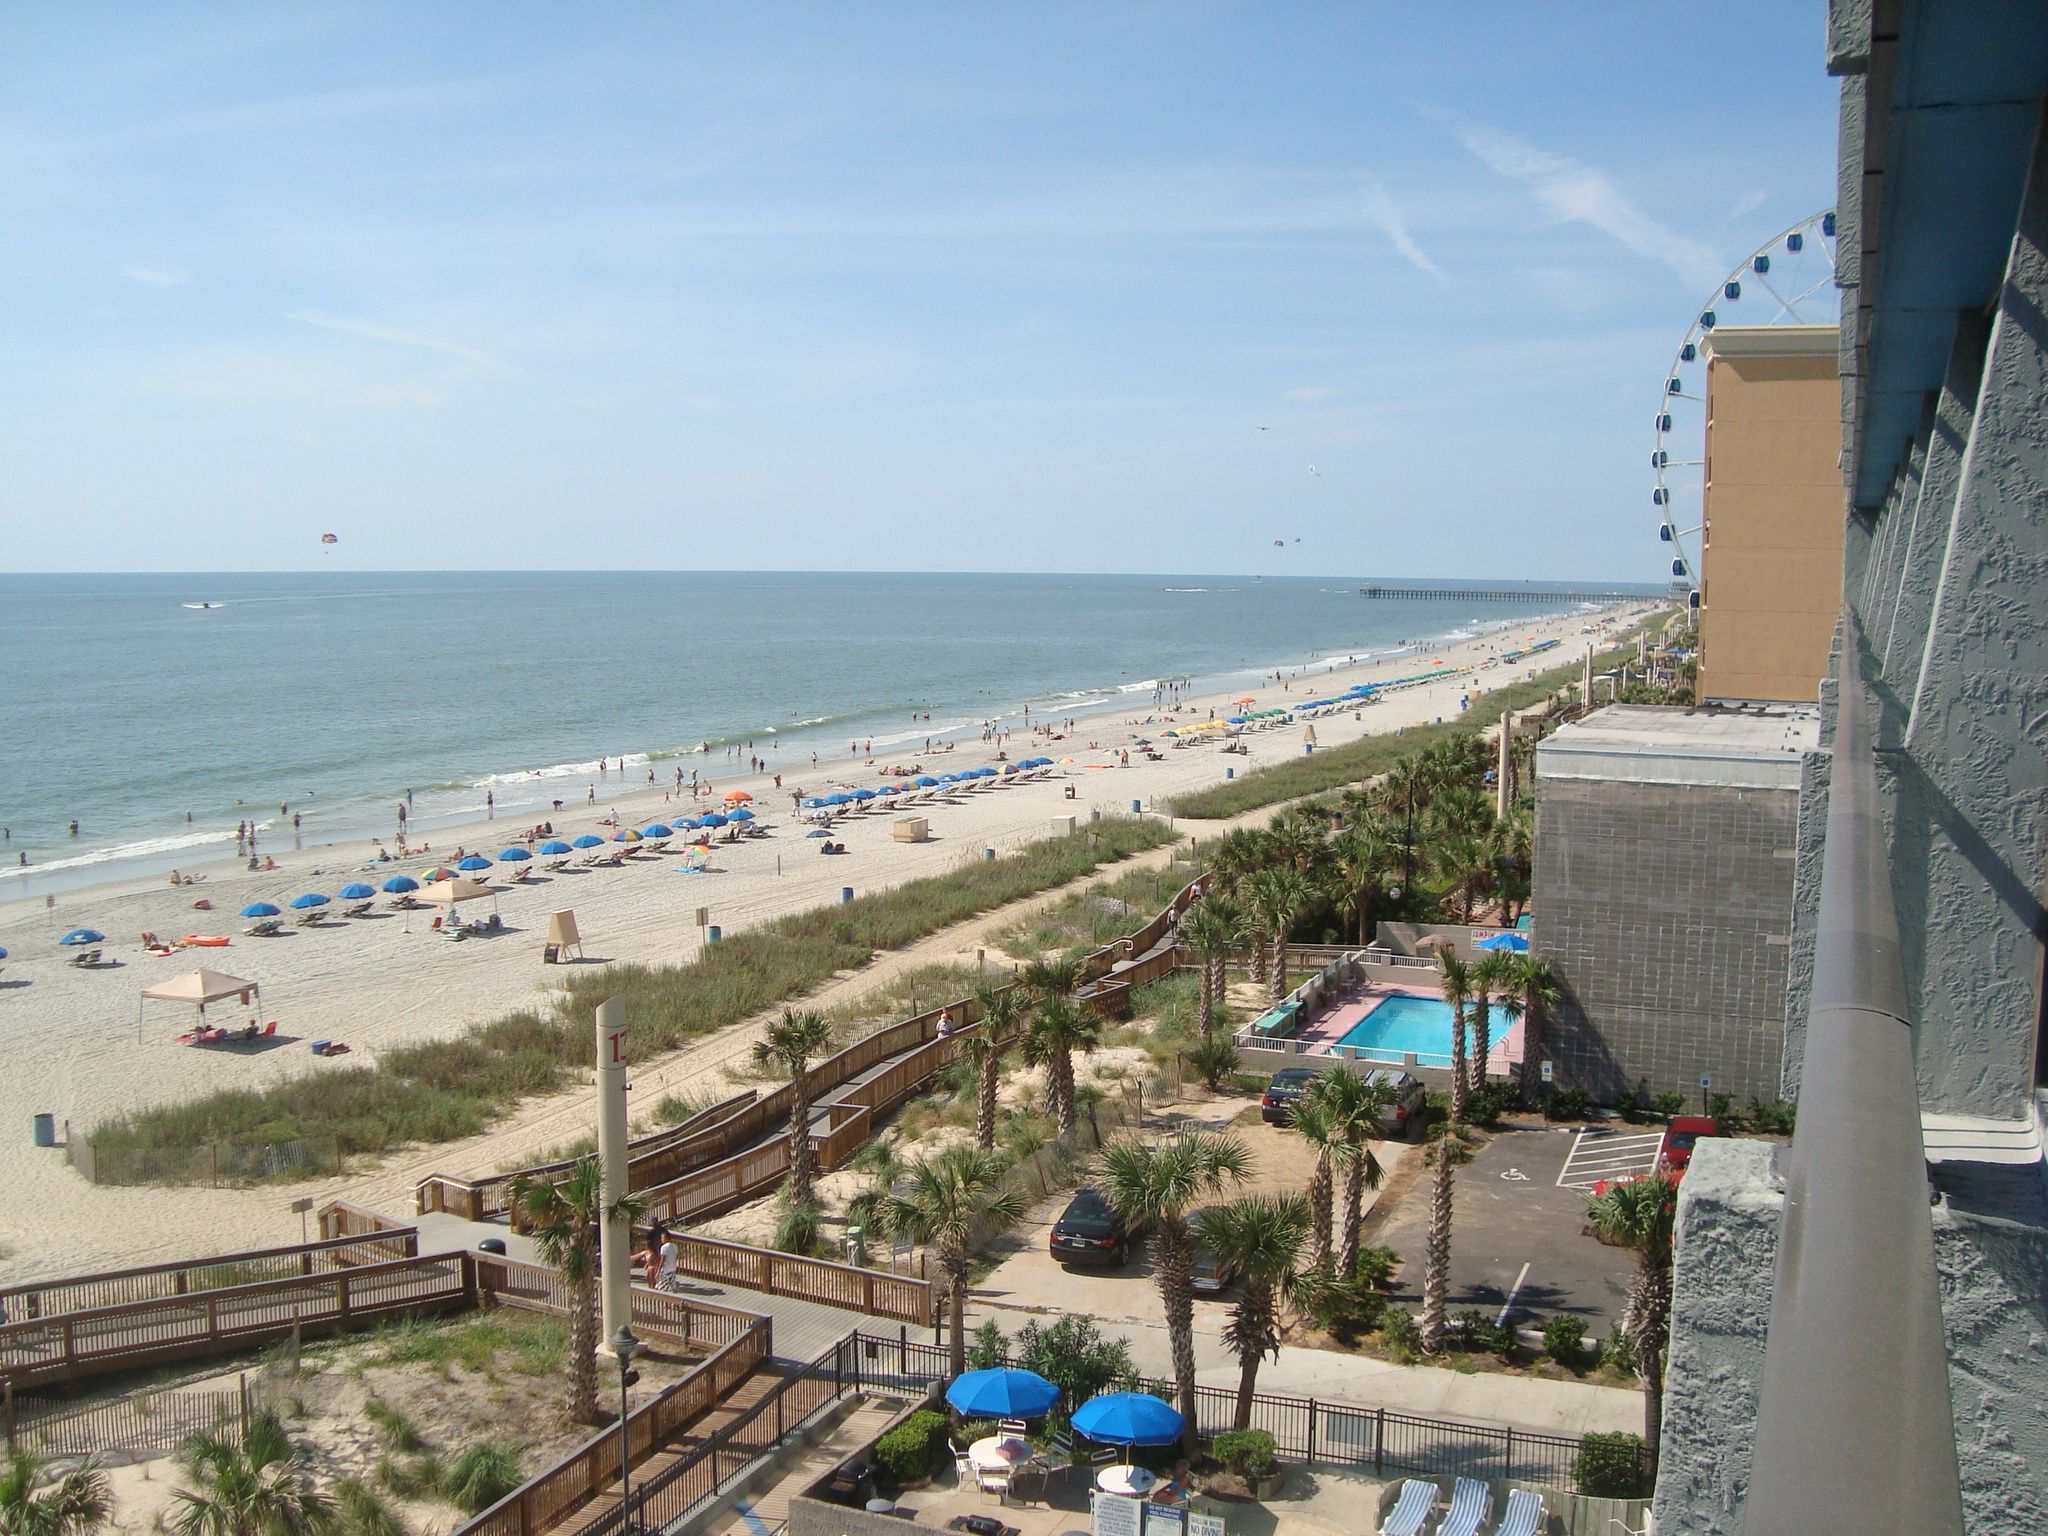 Myrtle Beach My Wanted To Take Me Here When We Were In Columbia Sc For Basic Training Graduation